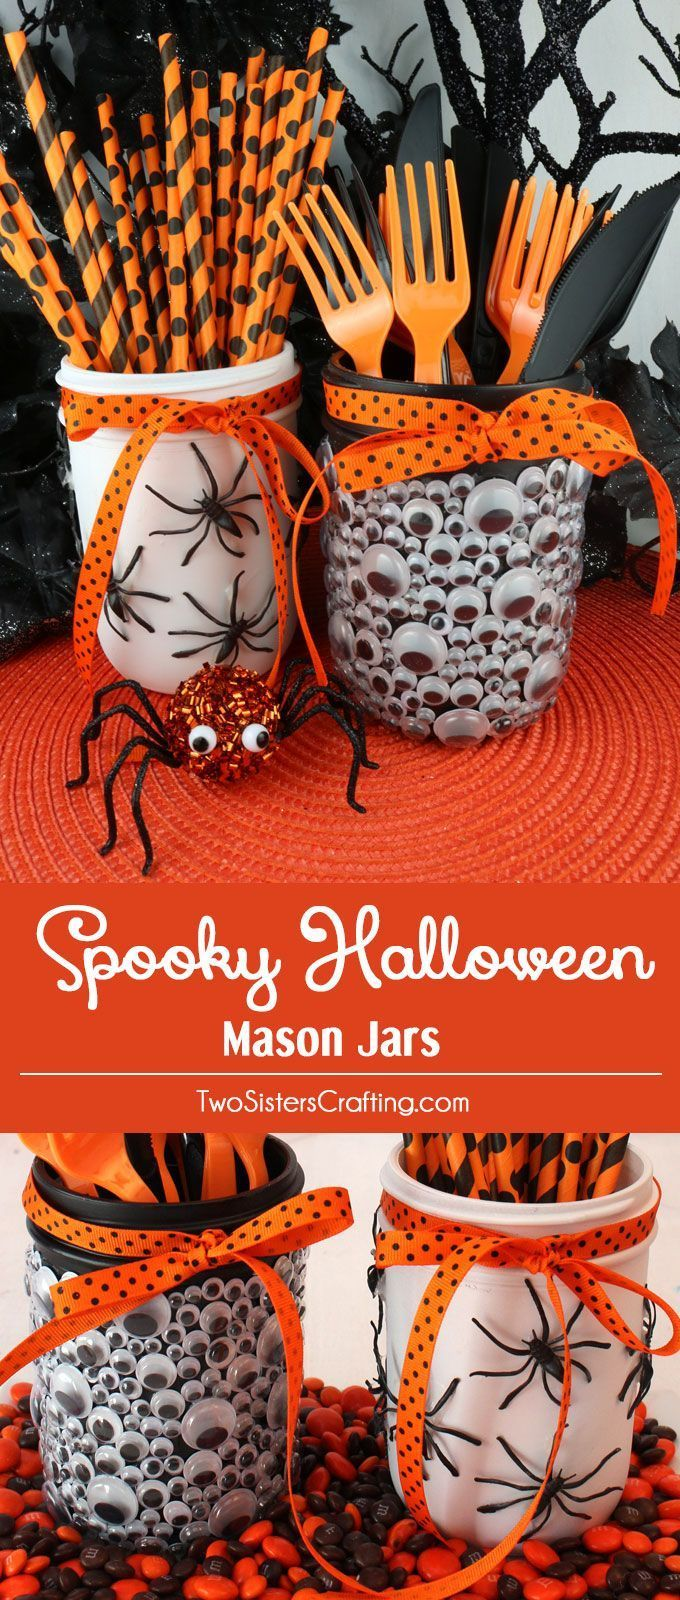 1371 best Fall images on Pinterest | Fall, Happy halloween and Do ...